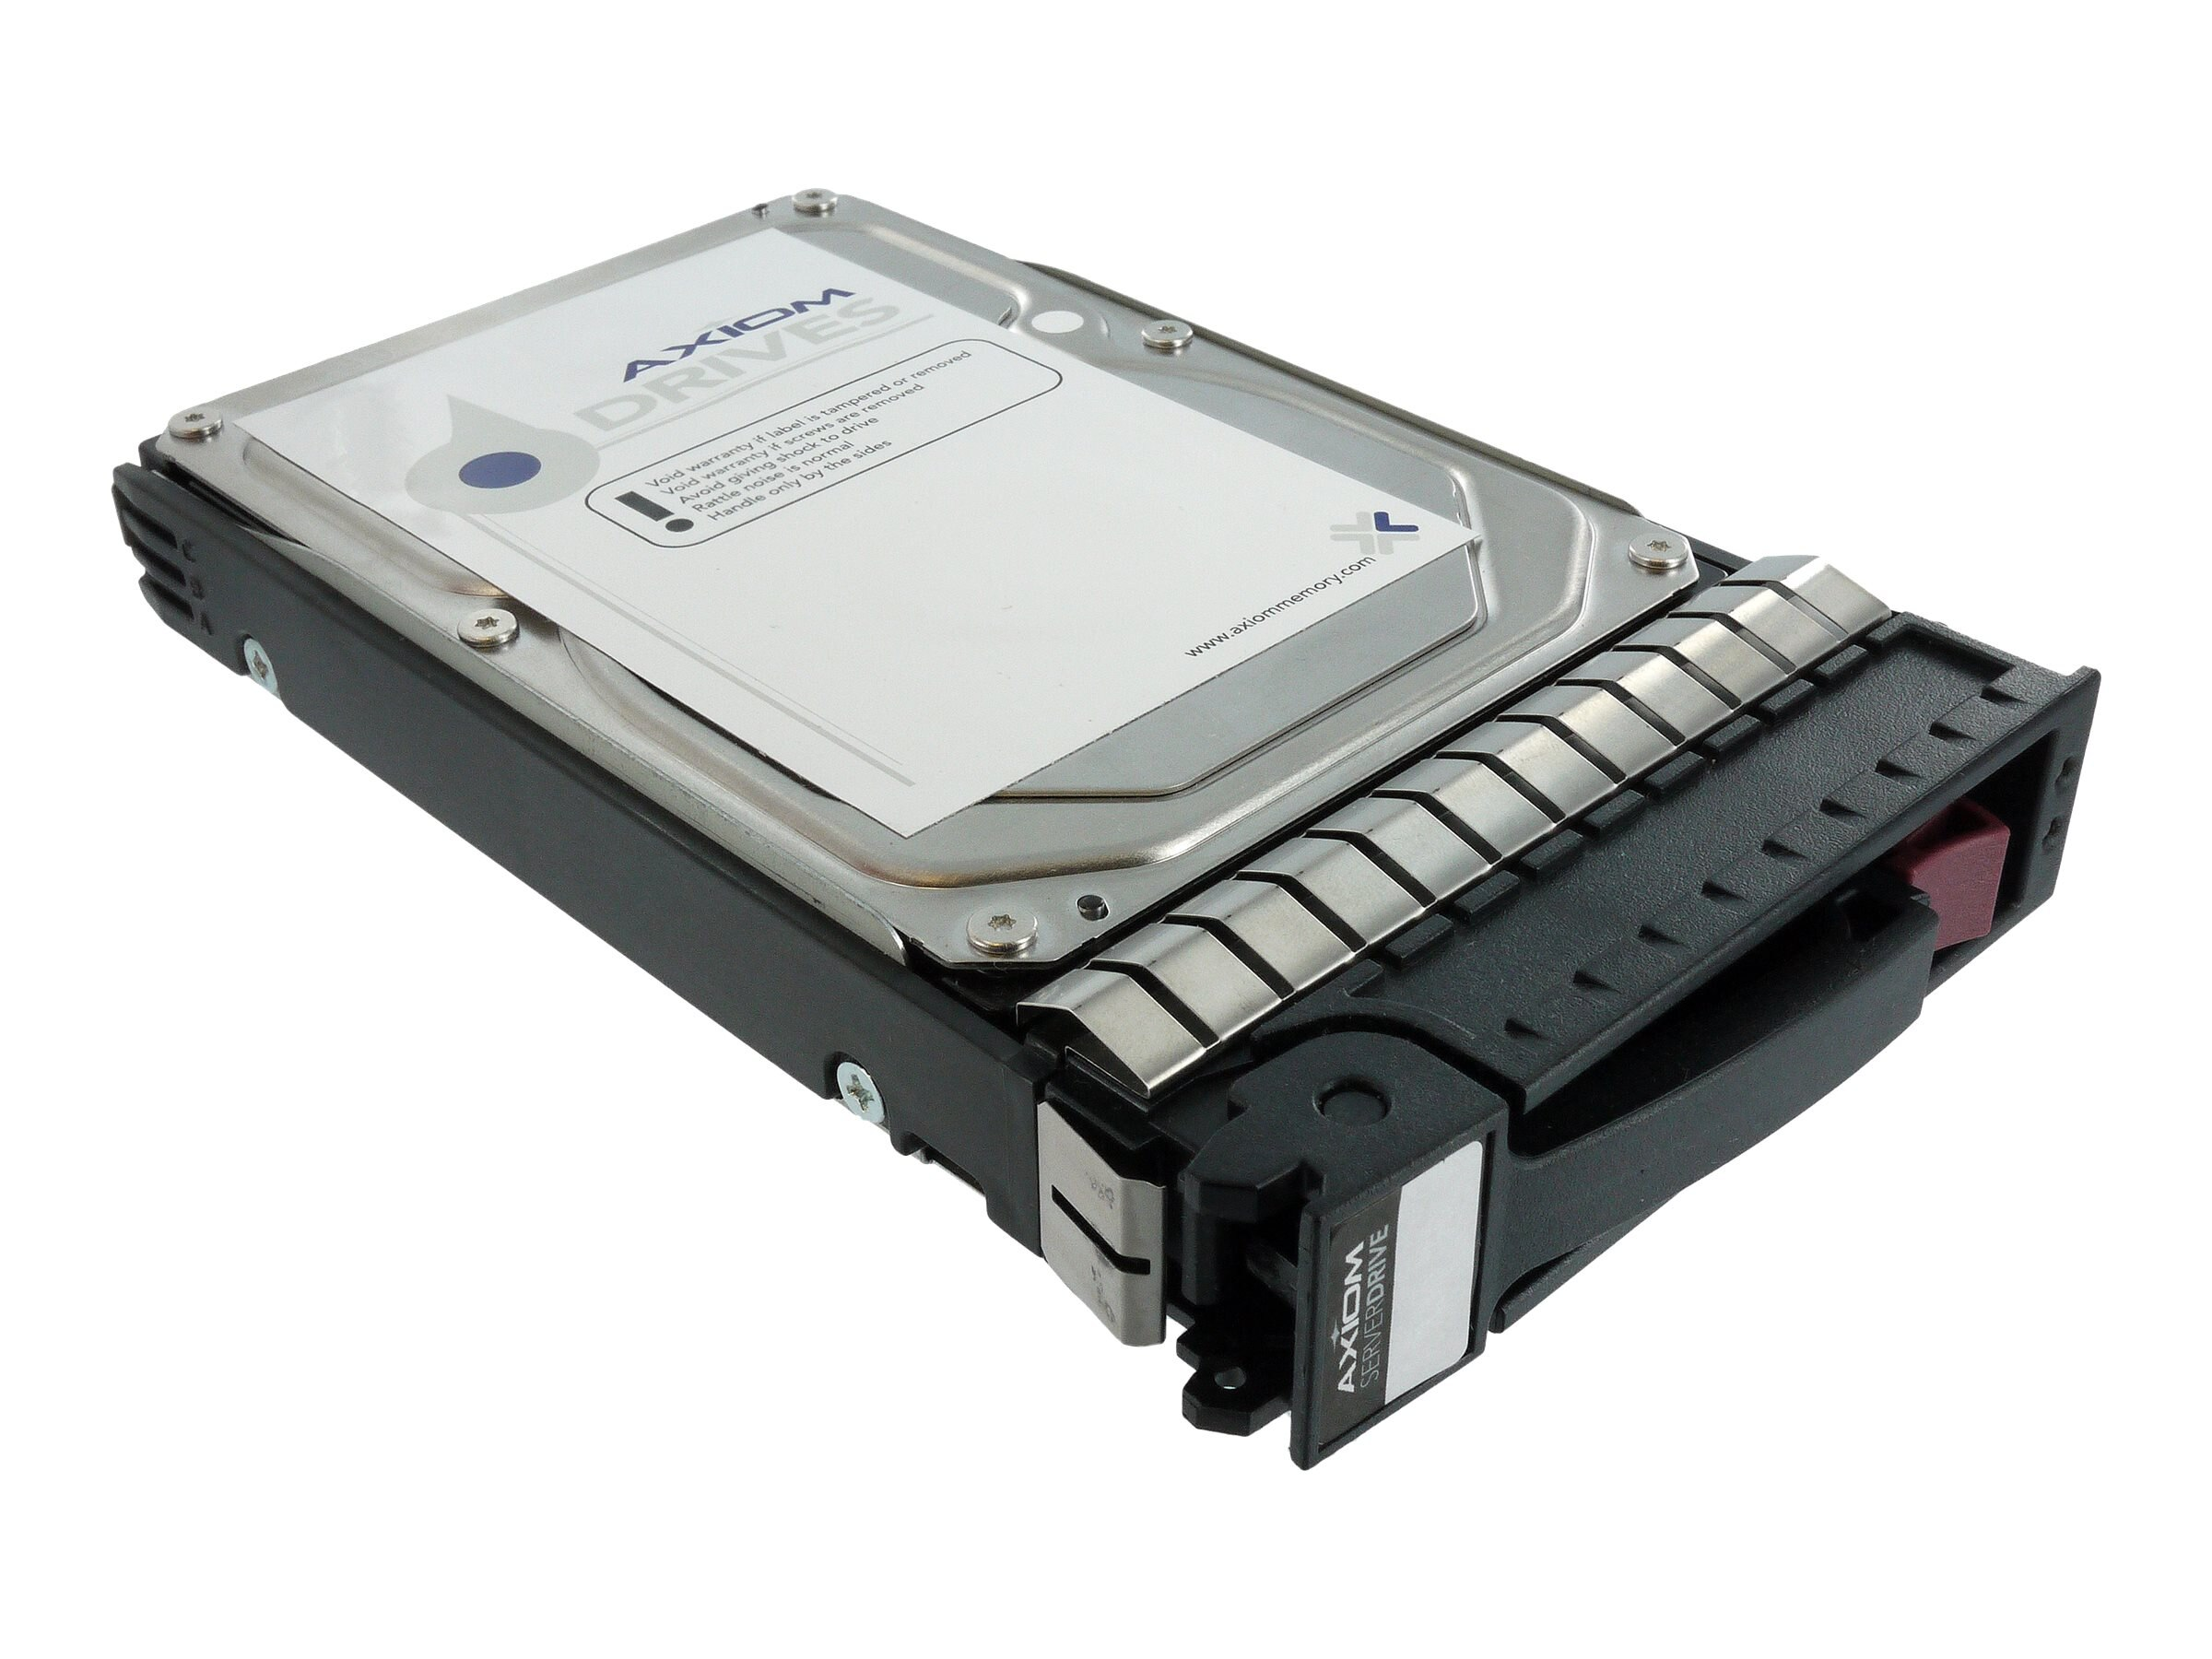 Axiom 300GB 15K SAS 6Gb s Hot-Swap Hard Drive Solution for HP Proliant Series